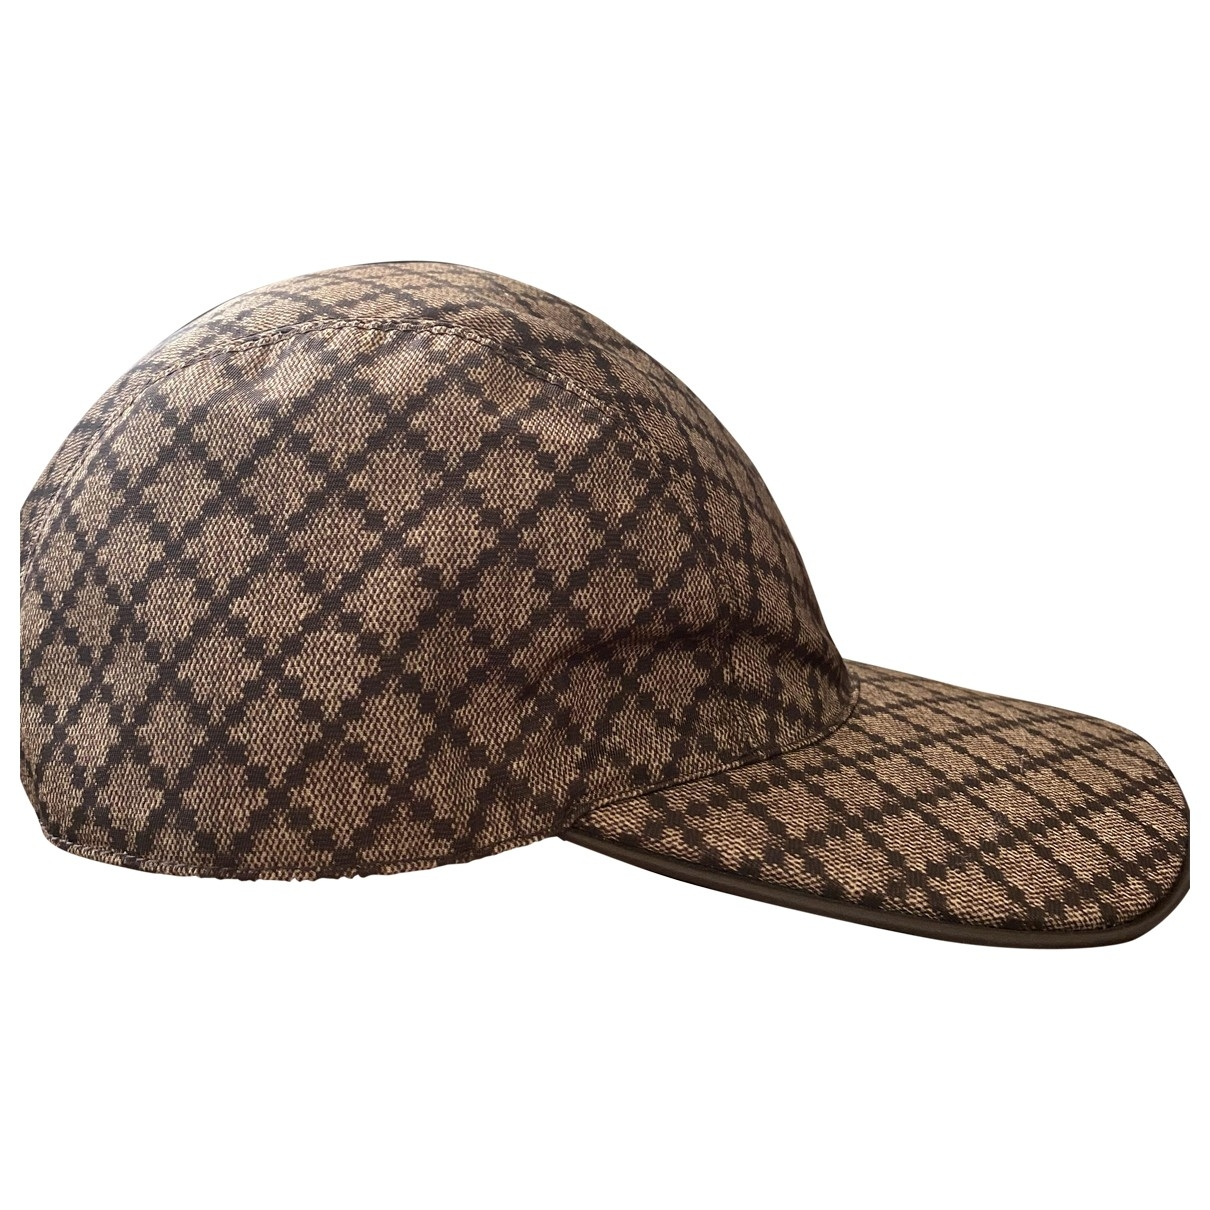 Gucci \N Brown Cotton hat & pull on hat for Men 57 cm